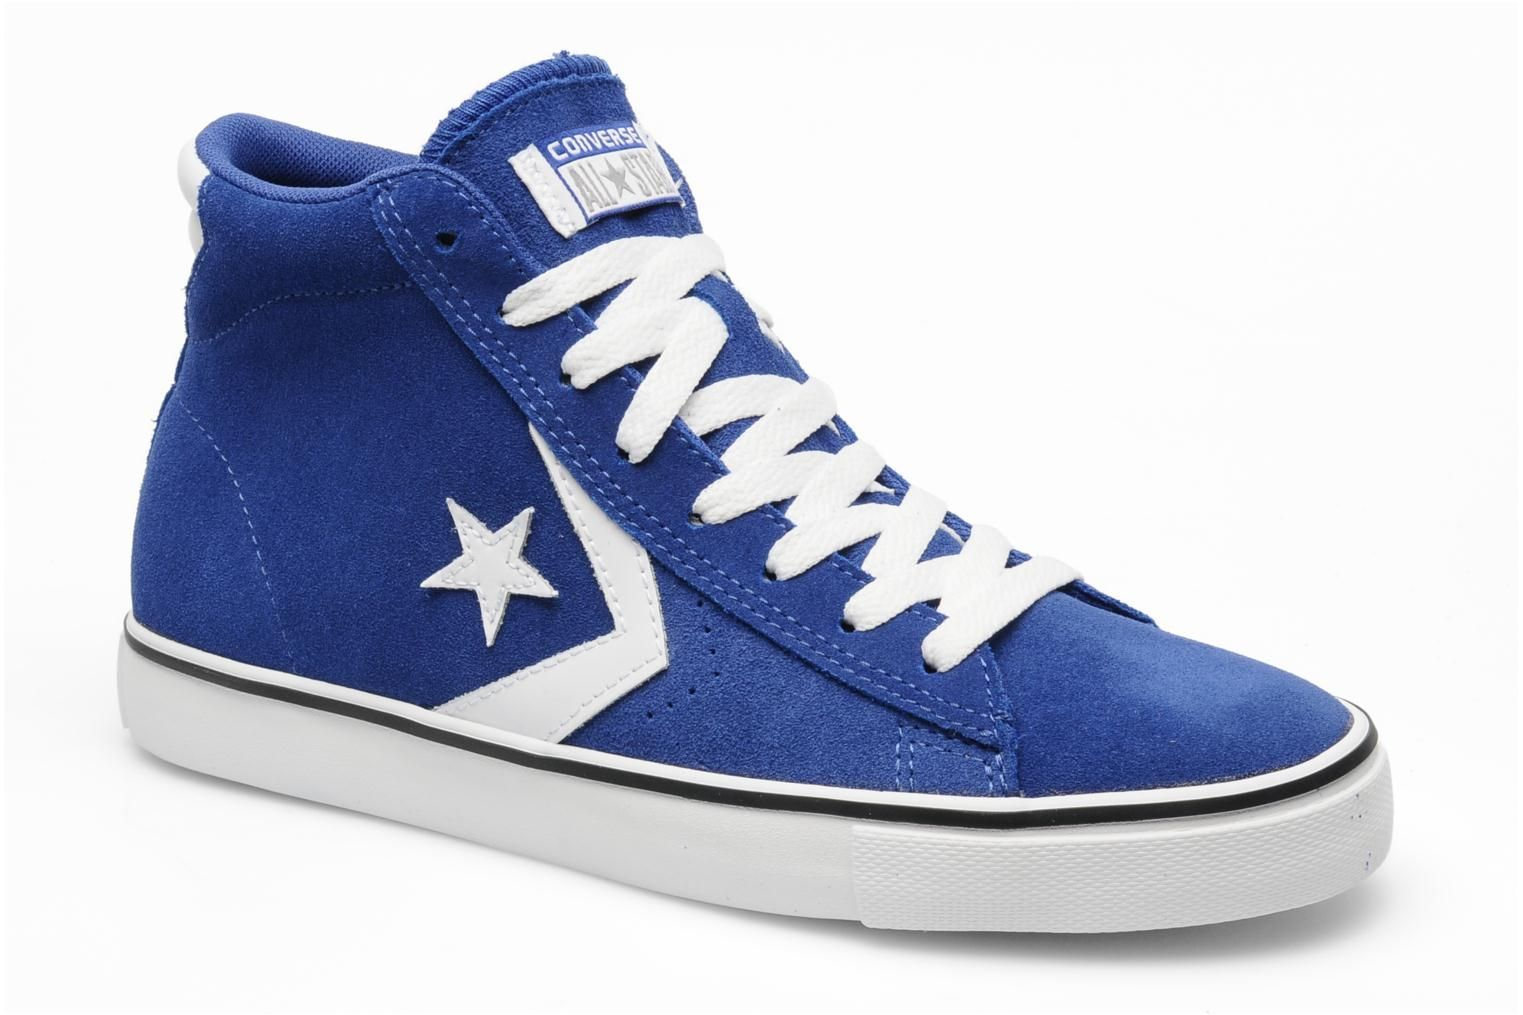 converse pro leather vulc suede mid m